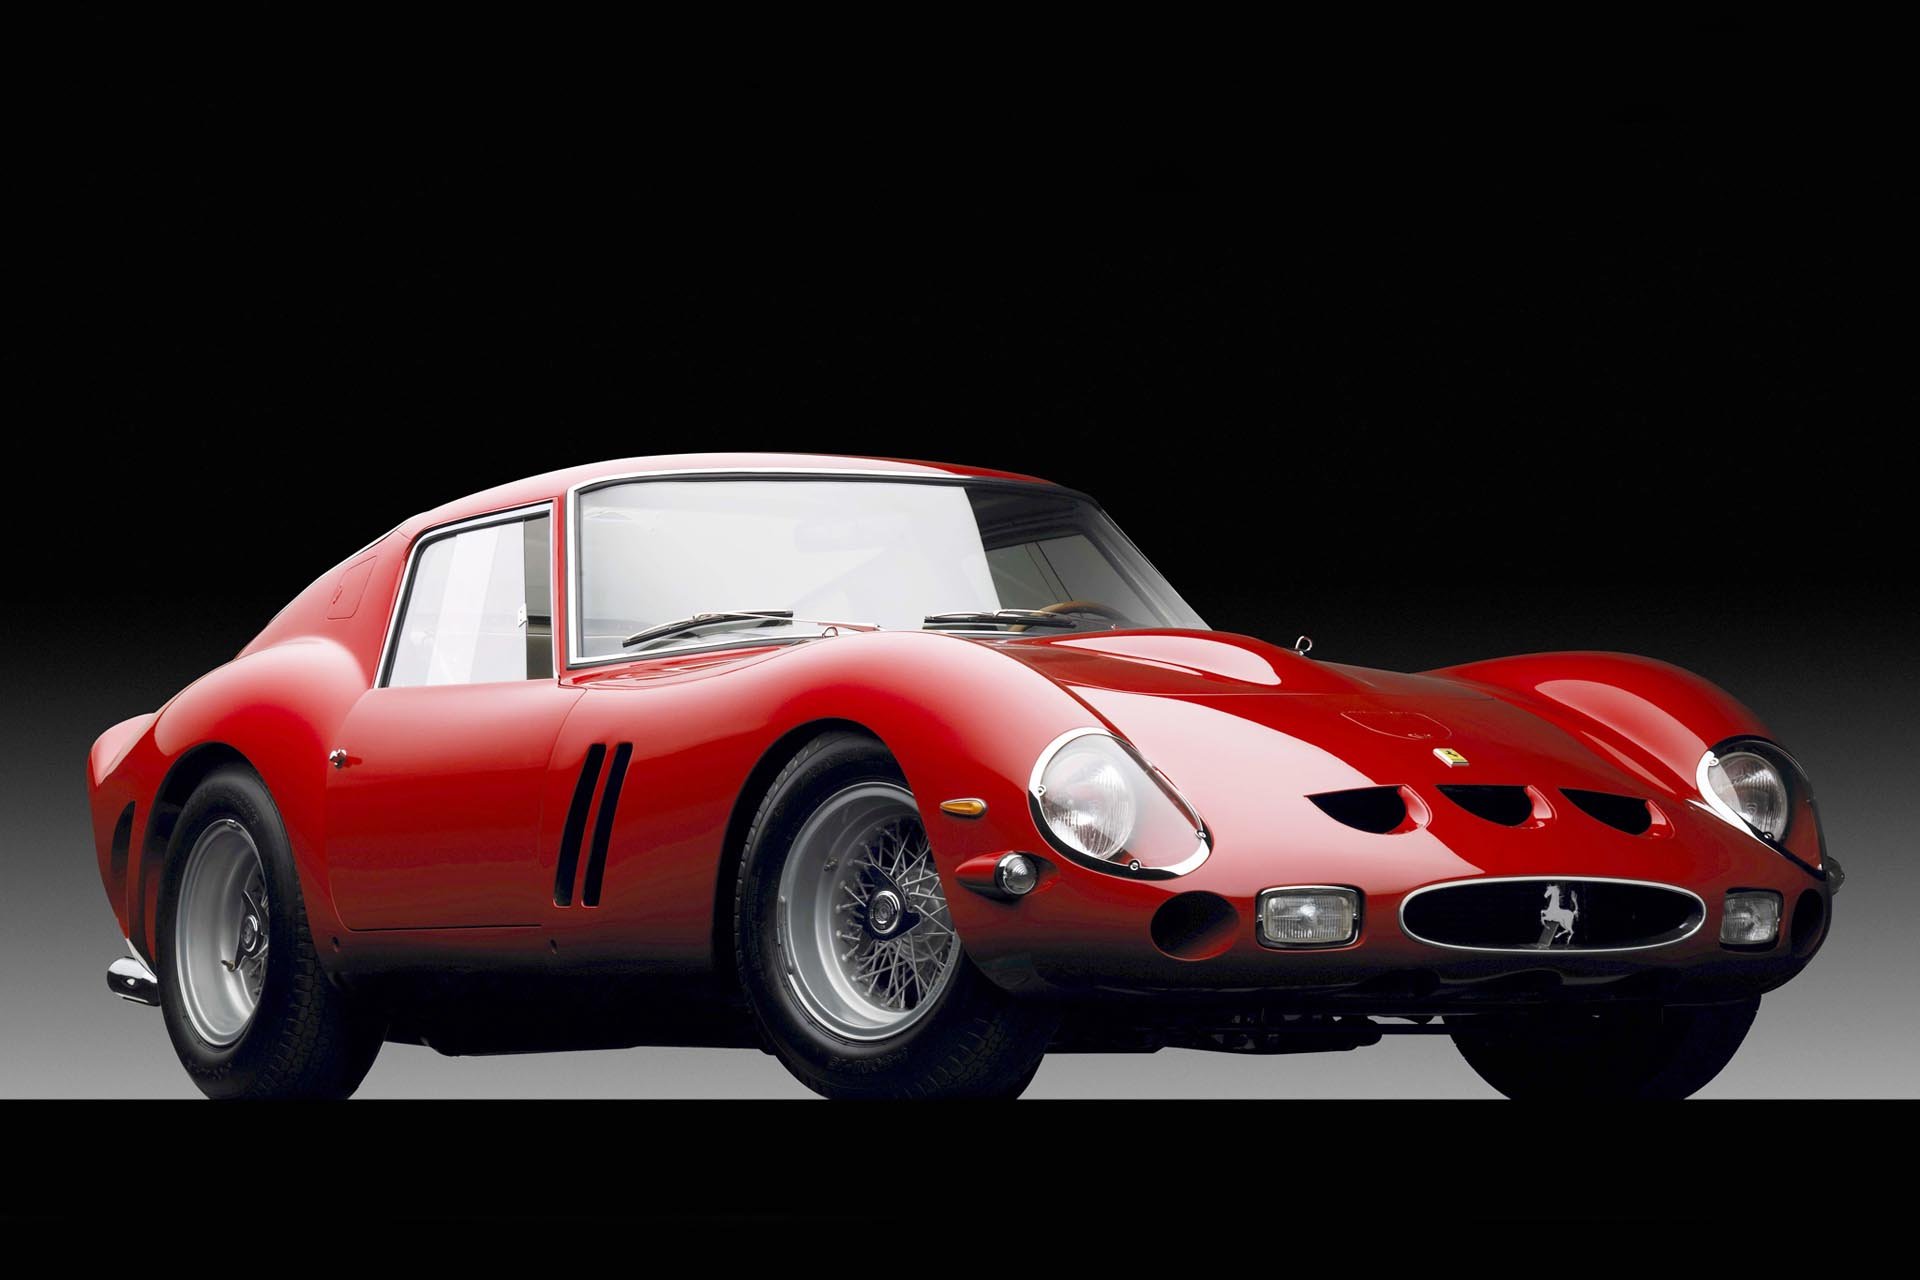 It is said that Enzo Ferrari cared only about racing, and sold road cars basically because he had to fund his competition models. The GTO, then, gets to be a blend of the best, a homologation special intended for racing, but certified for road use.